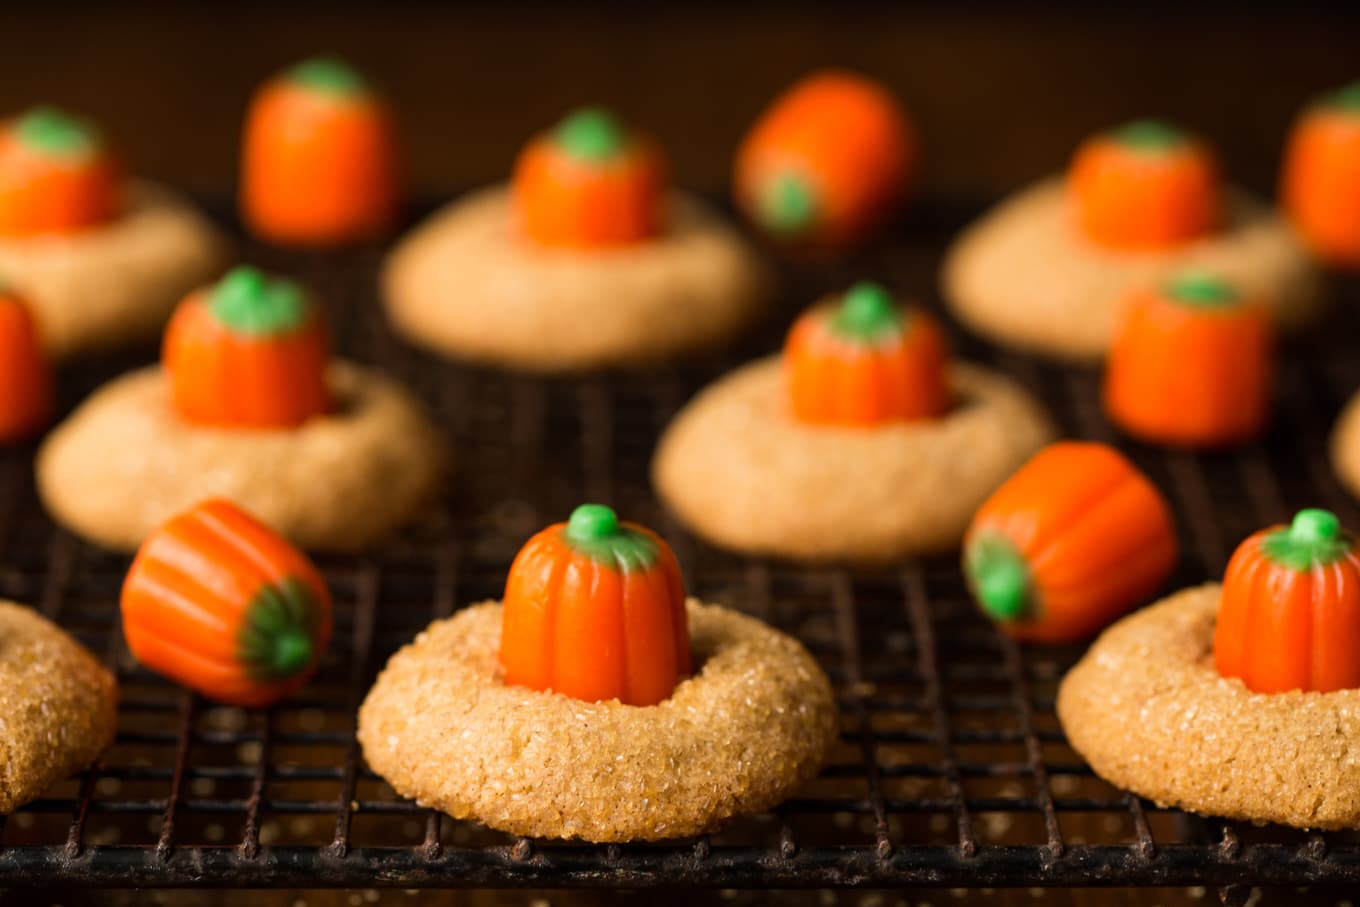 Need a delicious, sweet snack for an autumn party or a Halloween celebration? These Pumpkin Shortbread Cookies are the perfect, delicious solution! thecafesucrefarine.com